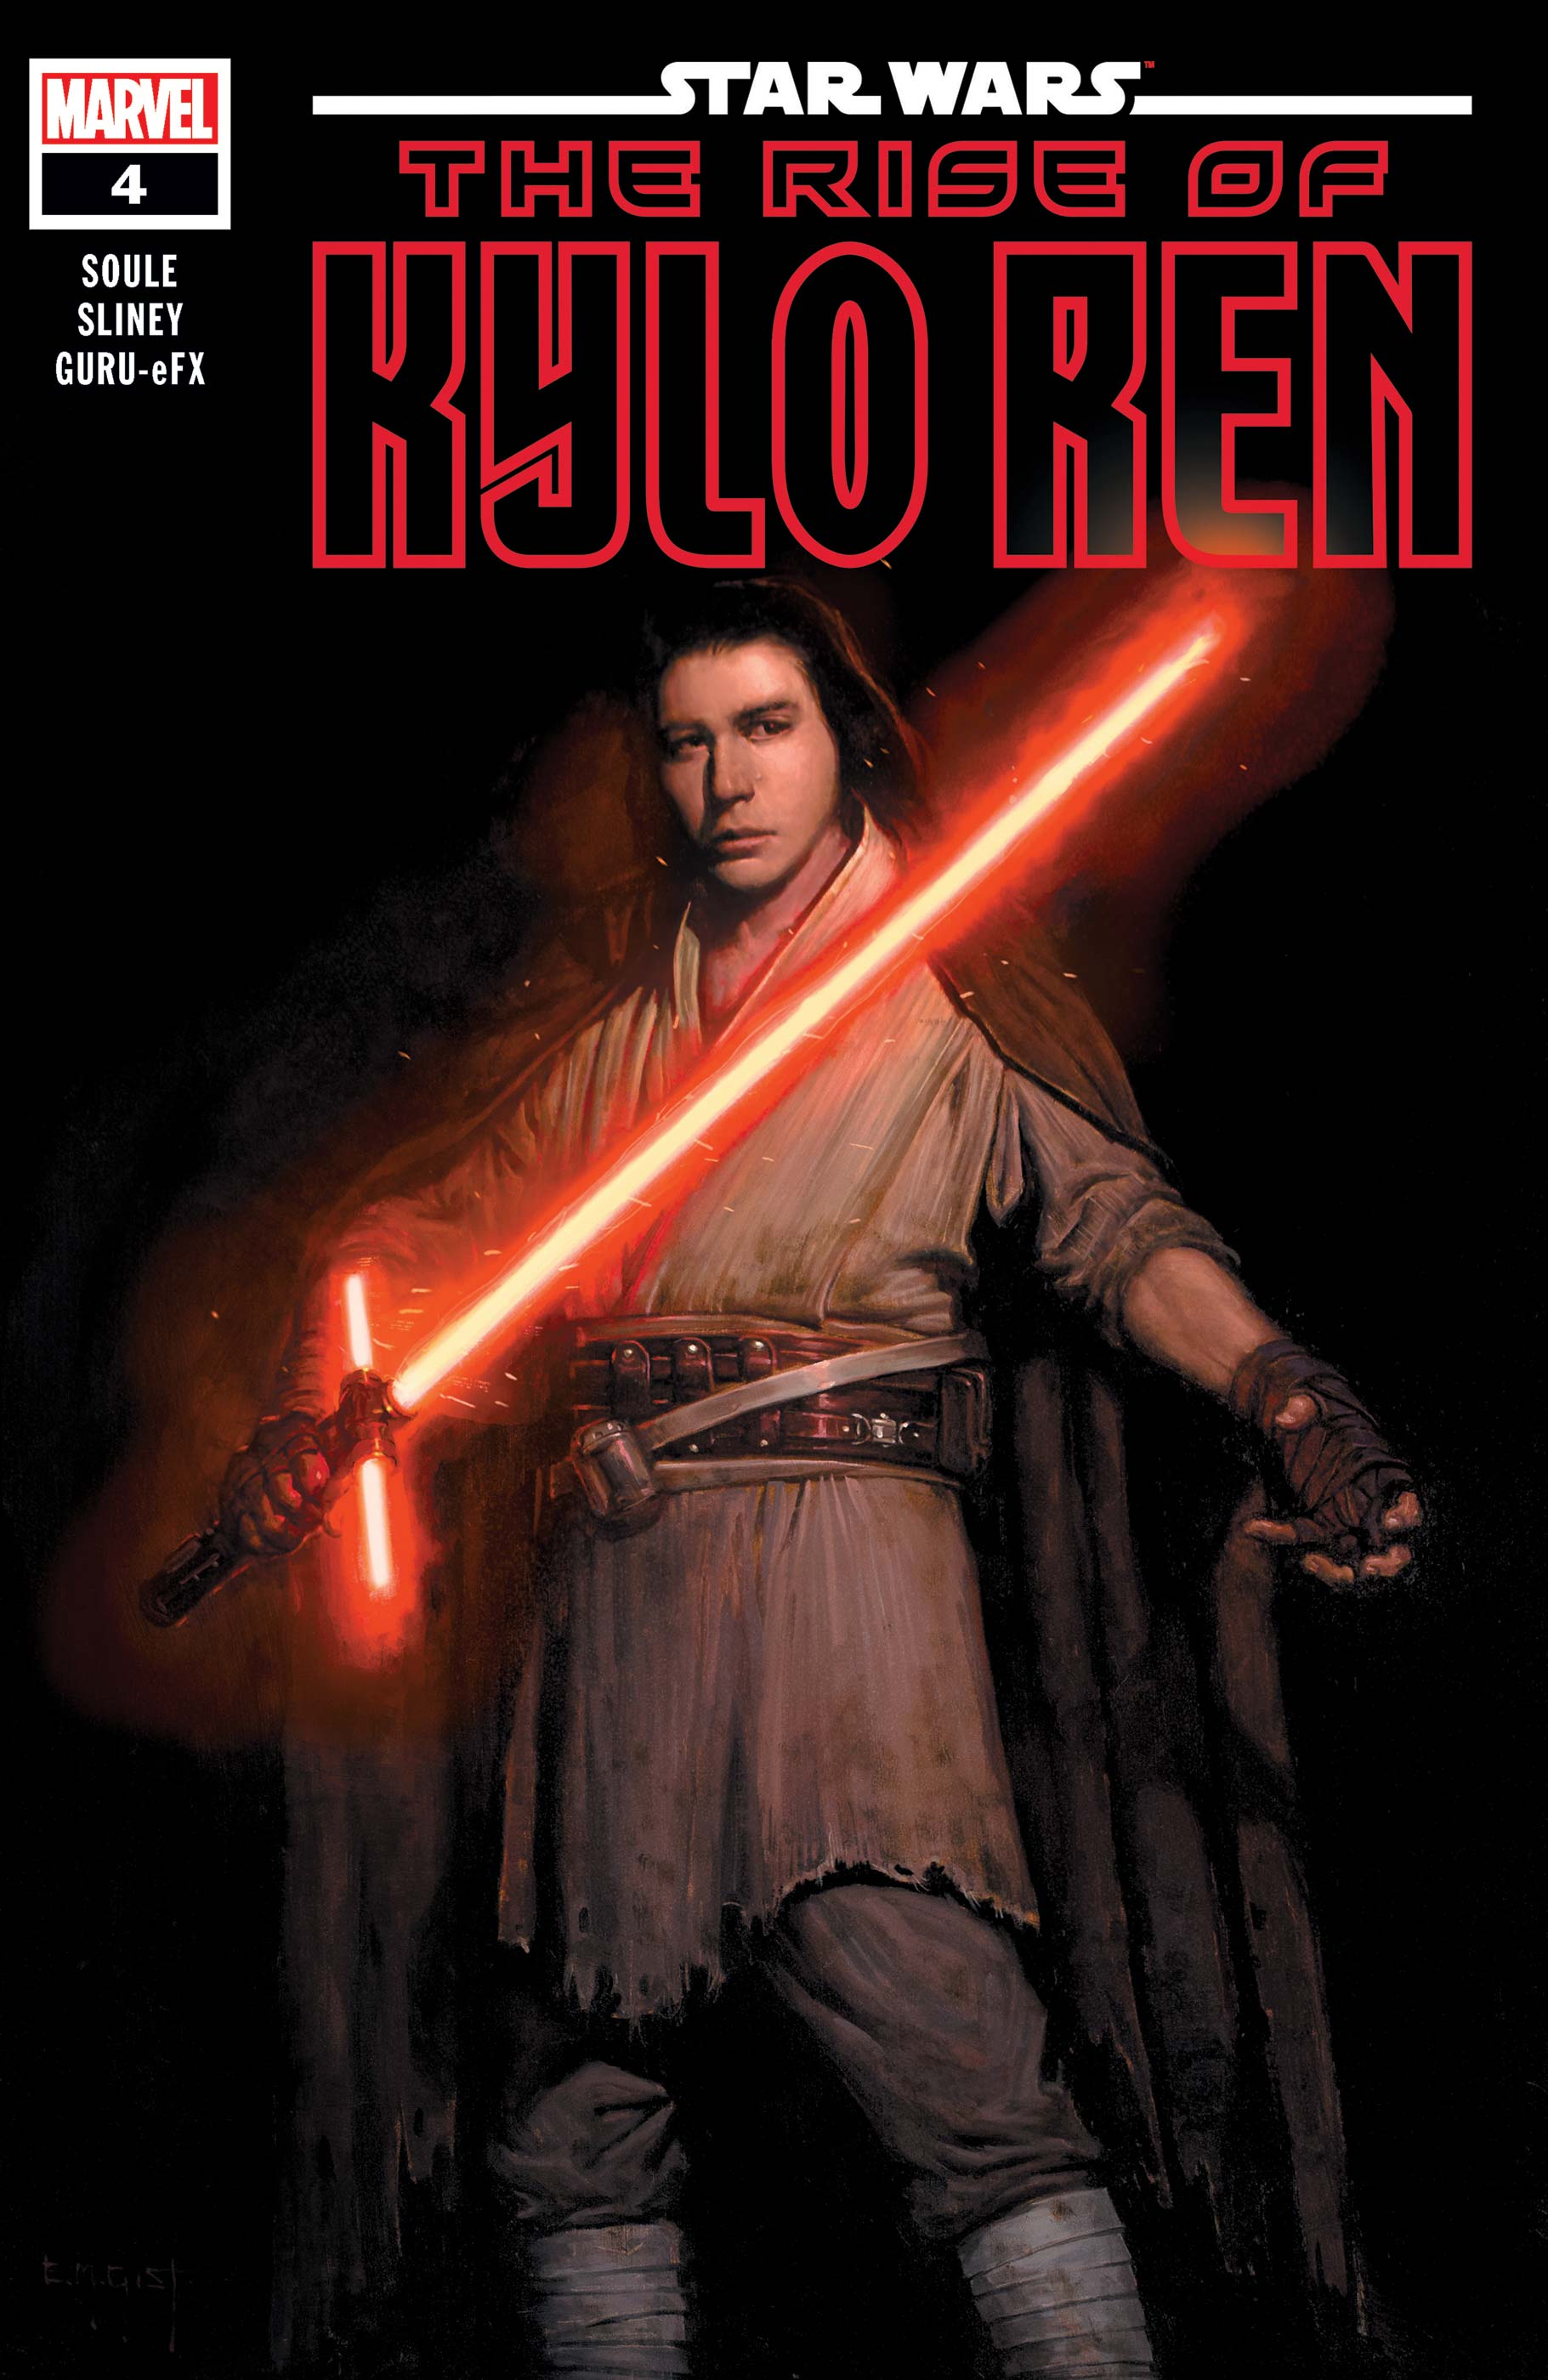 Star Wars: The Rise of Kylo Ren (2019) #4